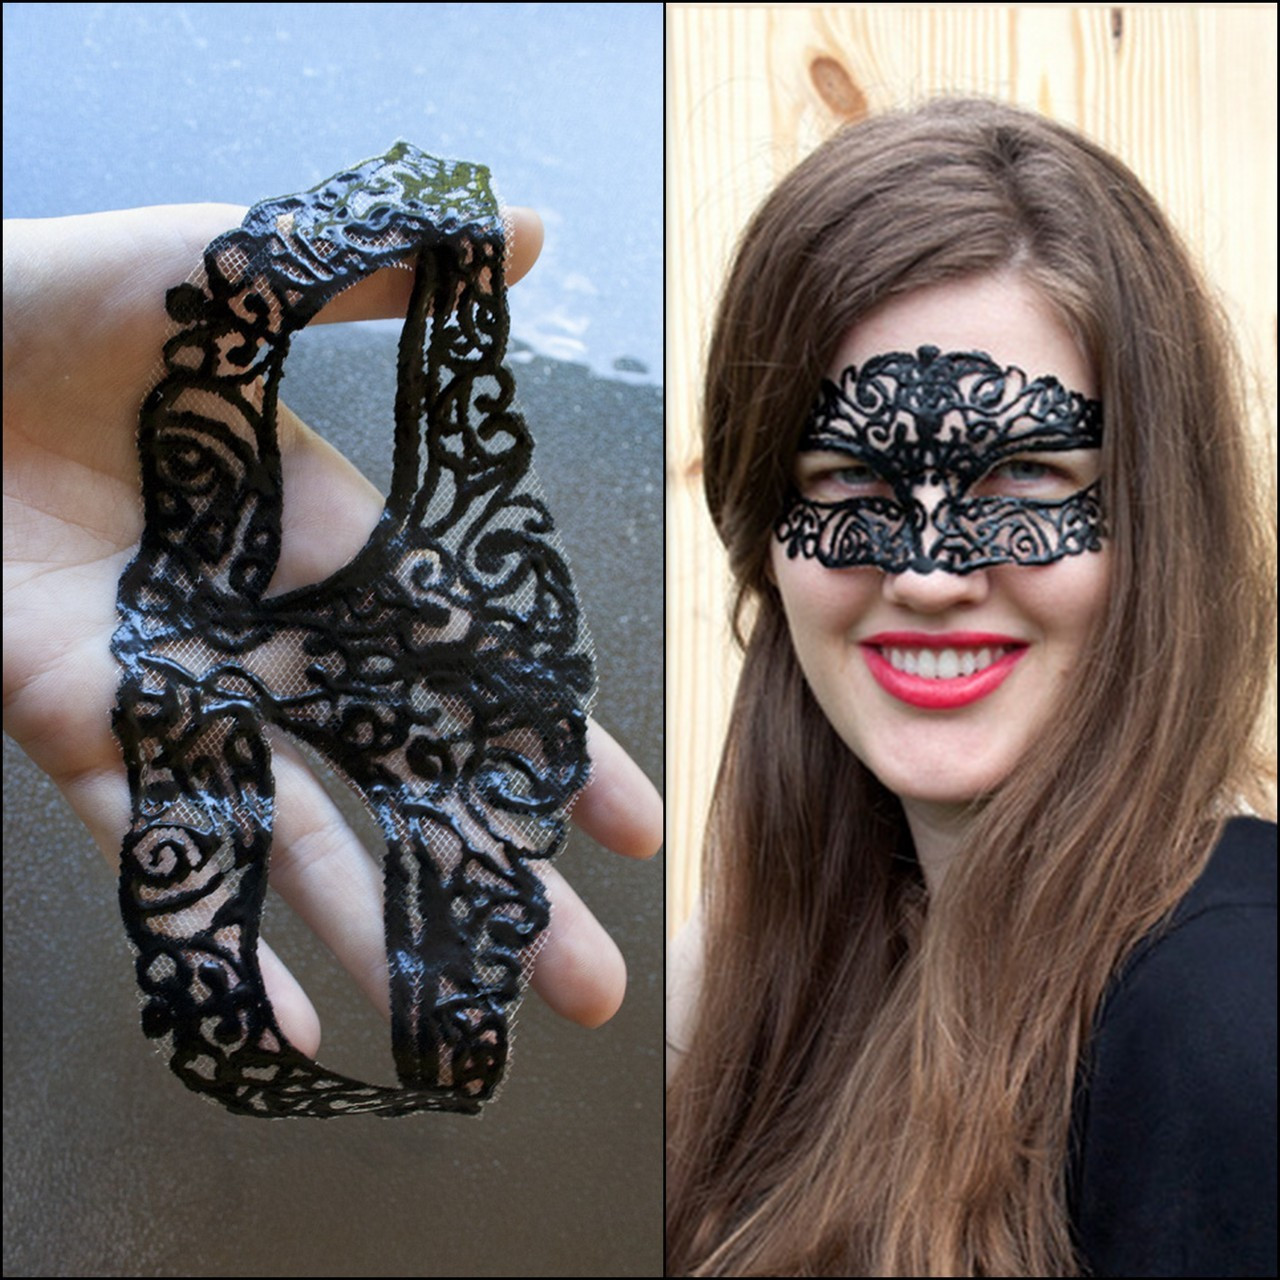 Best ideas about DIY Lace Masquerade Mask . Save or Pin True Blue Me & You DIYs for Creatives • DIY Masquerade Now.